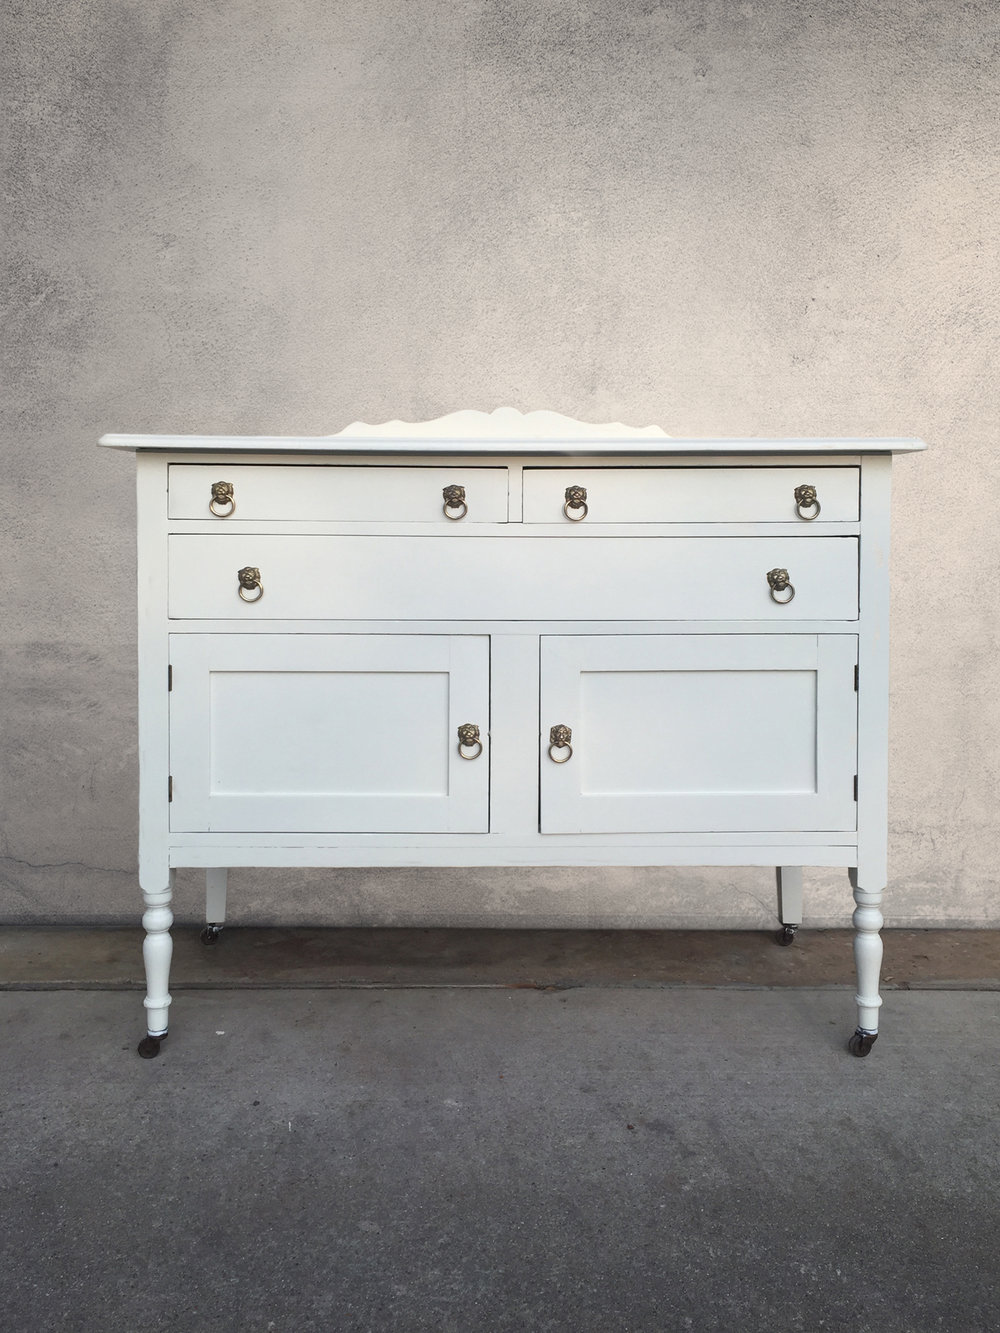 Copy of white wedding buffet  |  $875